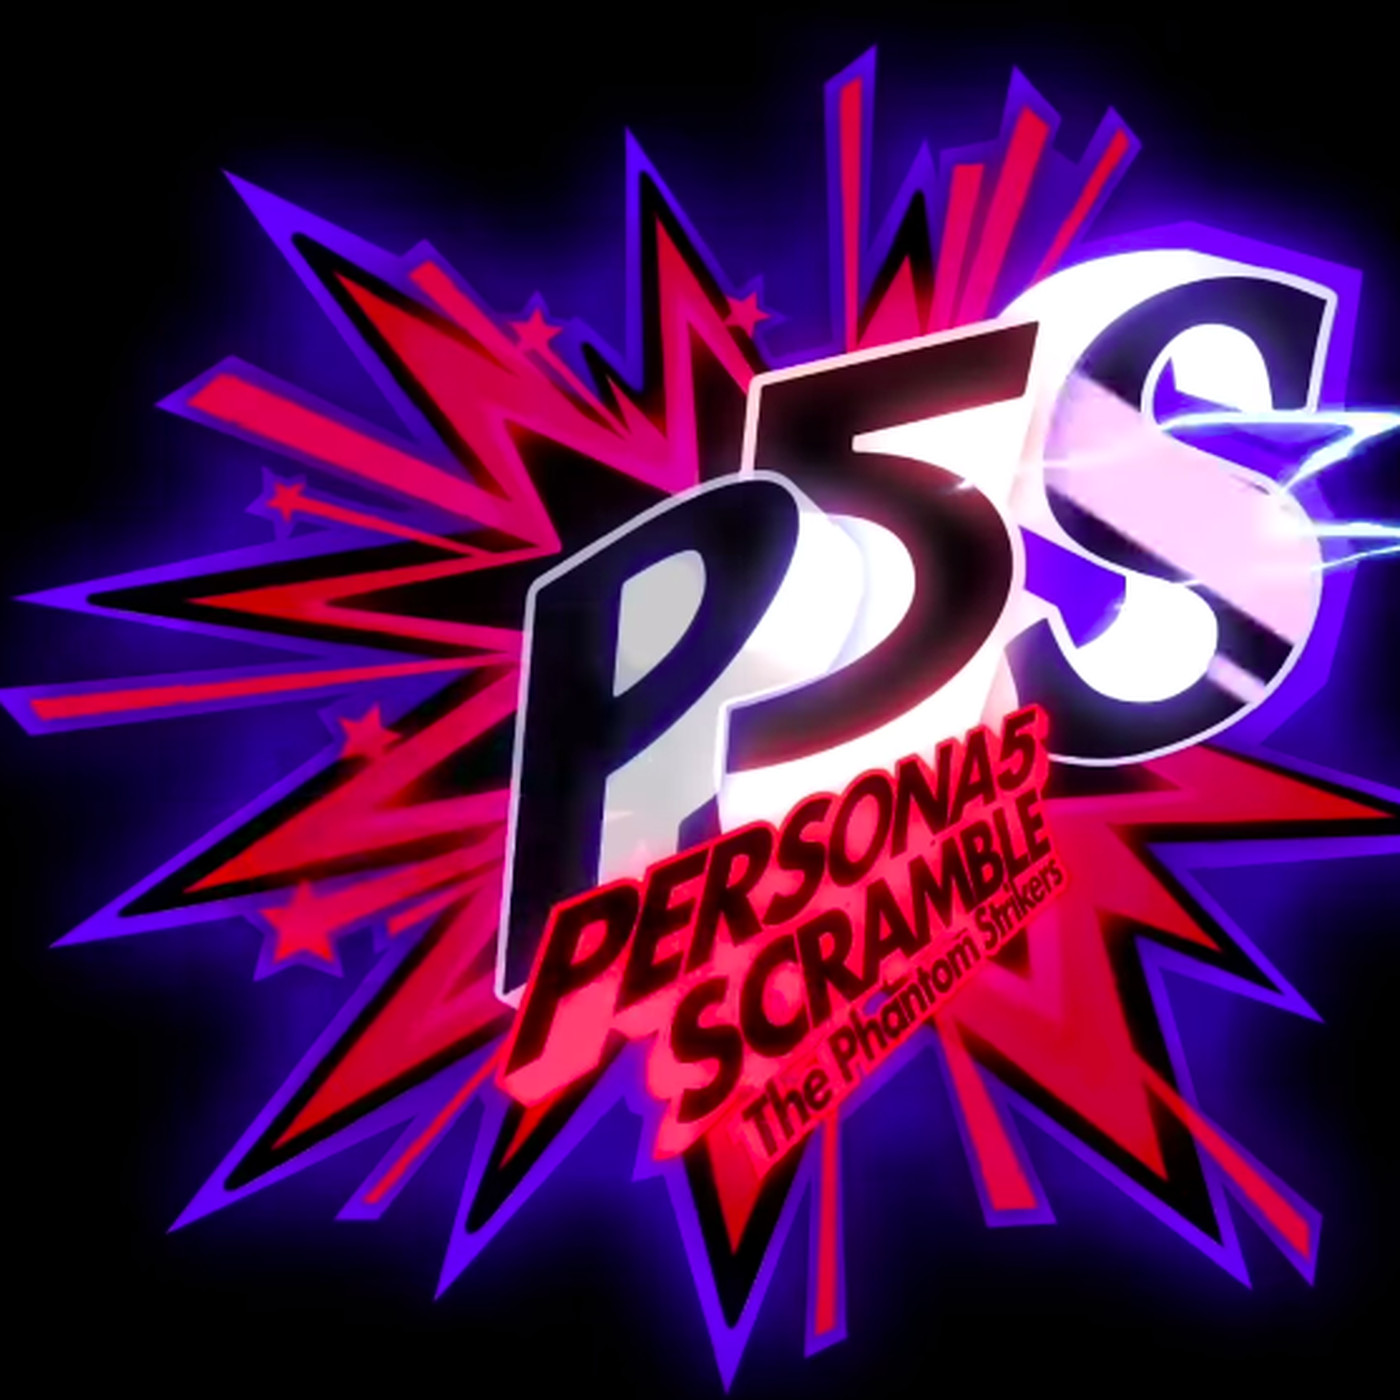 Persona 5 Scramble Is A True Sequel To Persona 5 The Verge